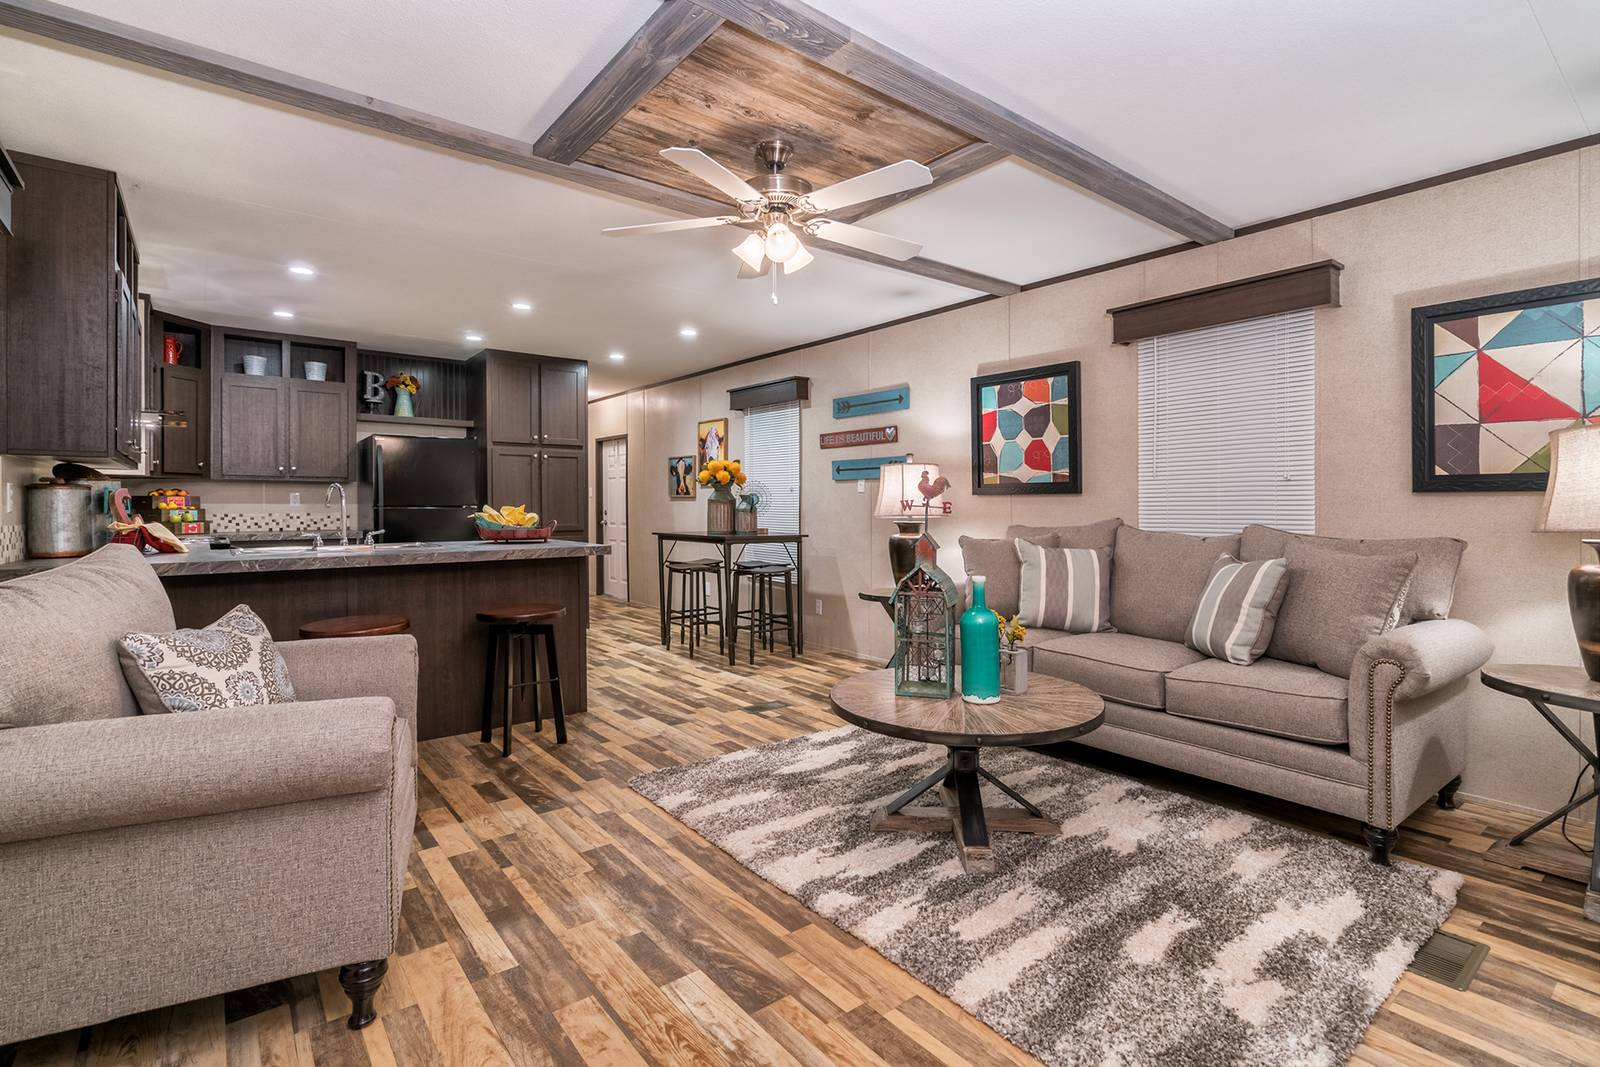 Different Vinyl Flooring Options for Your Titan Manufactured Home